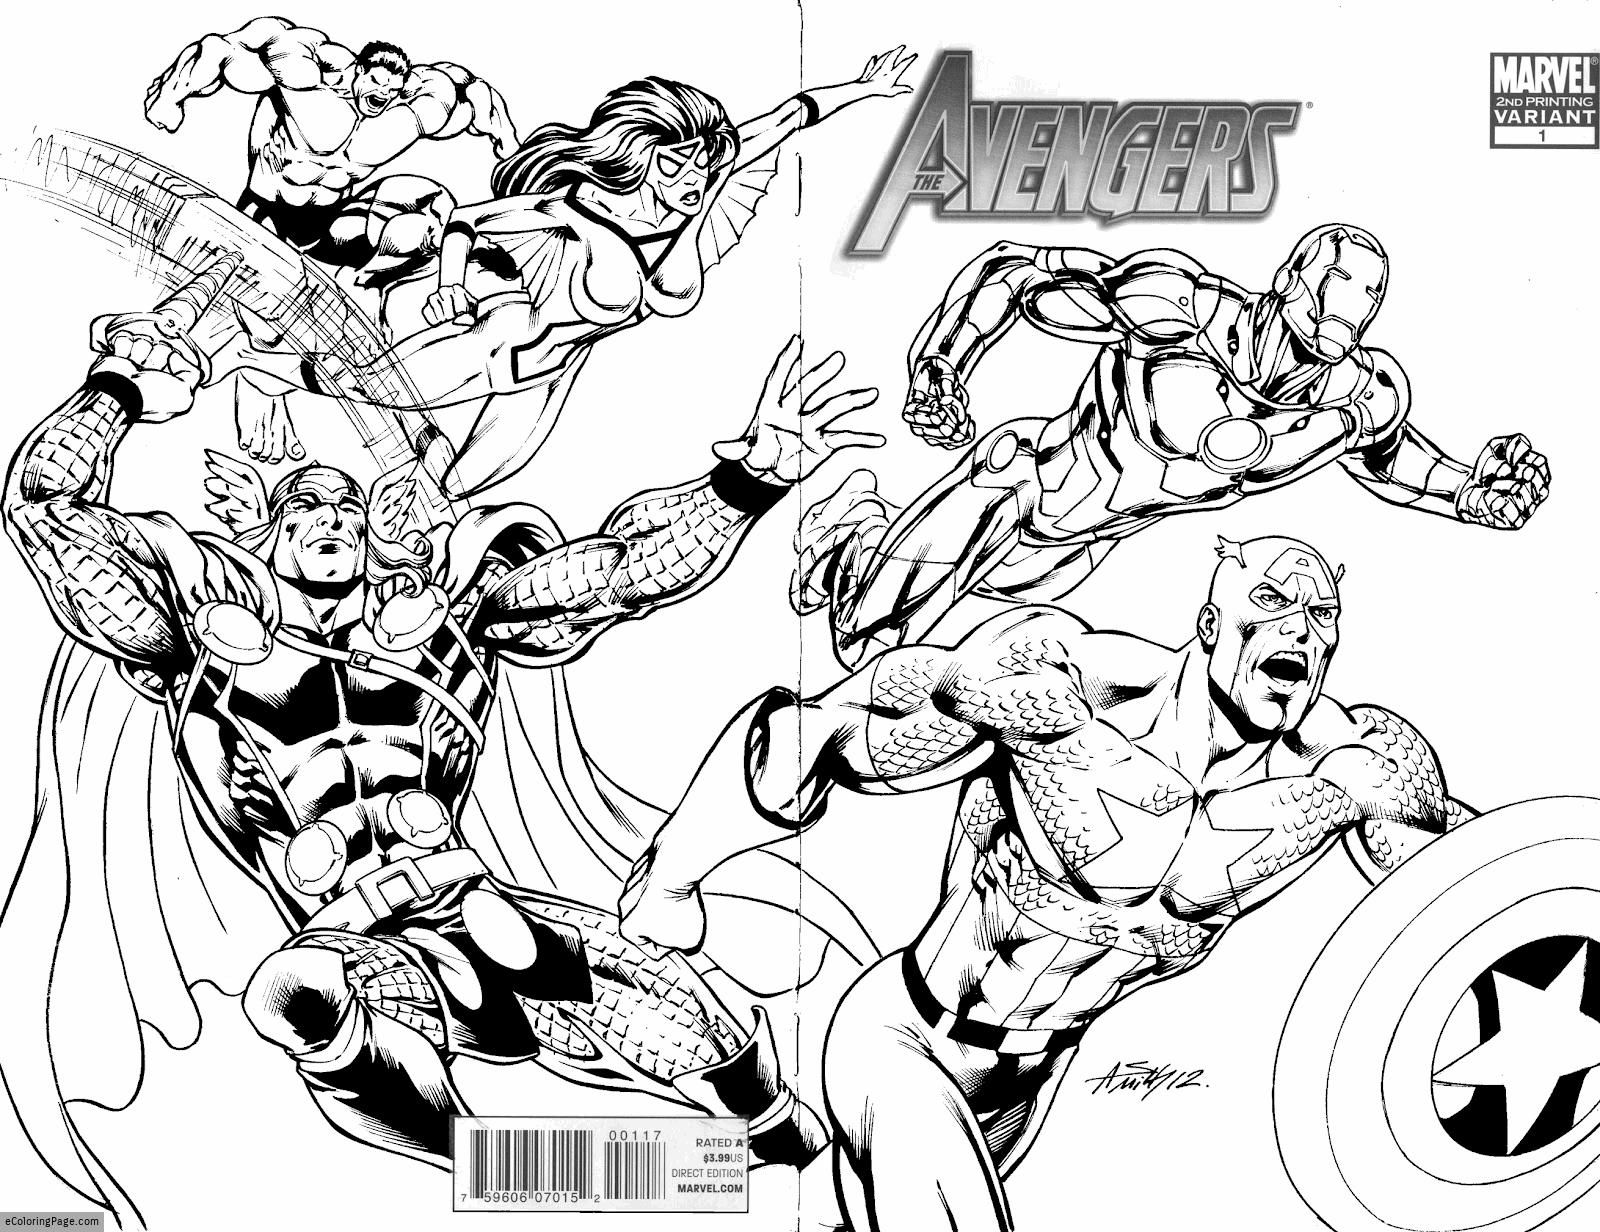 coloring pages for kids super heros superhero avengers character superhero coloring pages for pages coloring super heros for kids